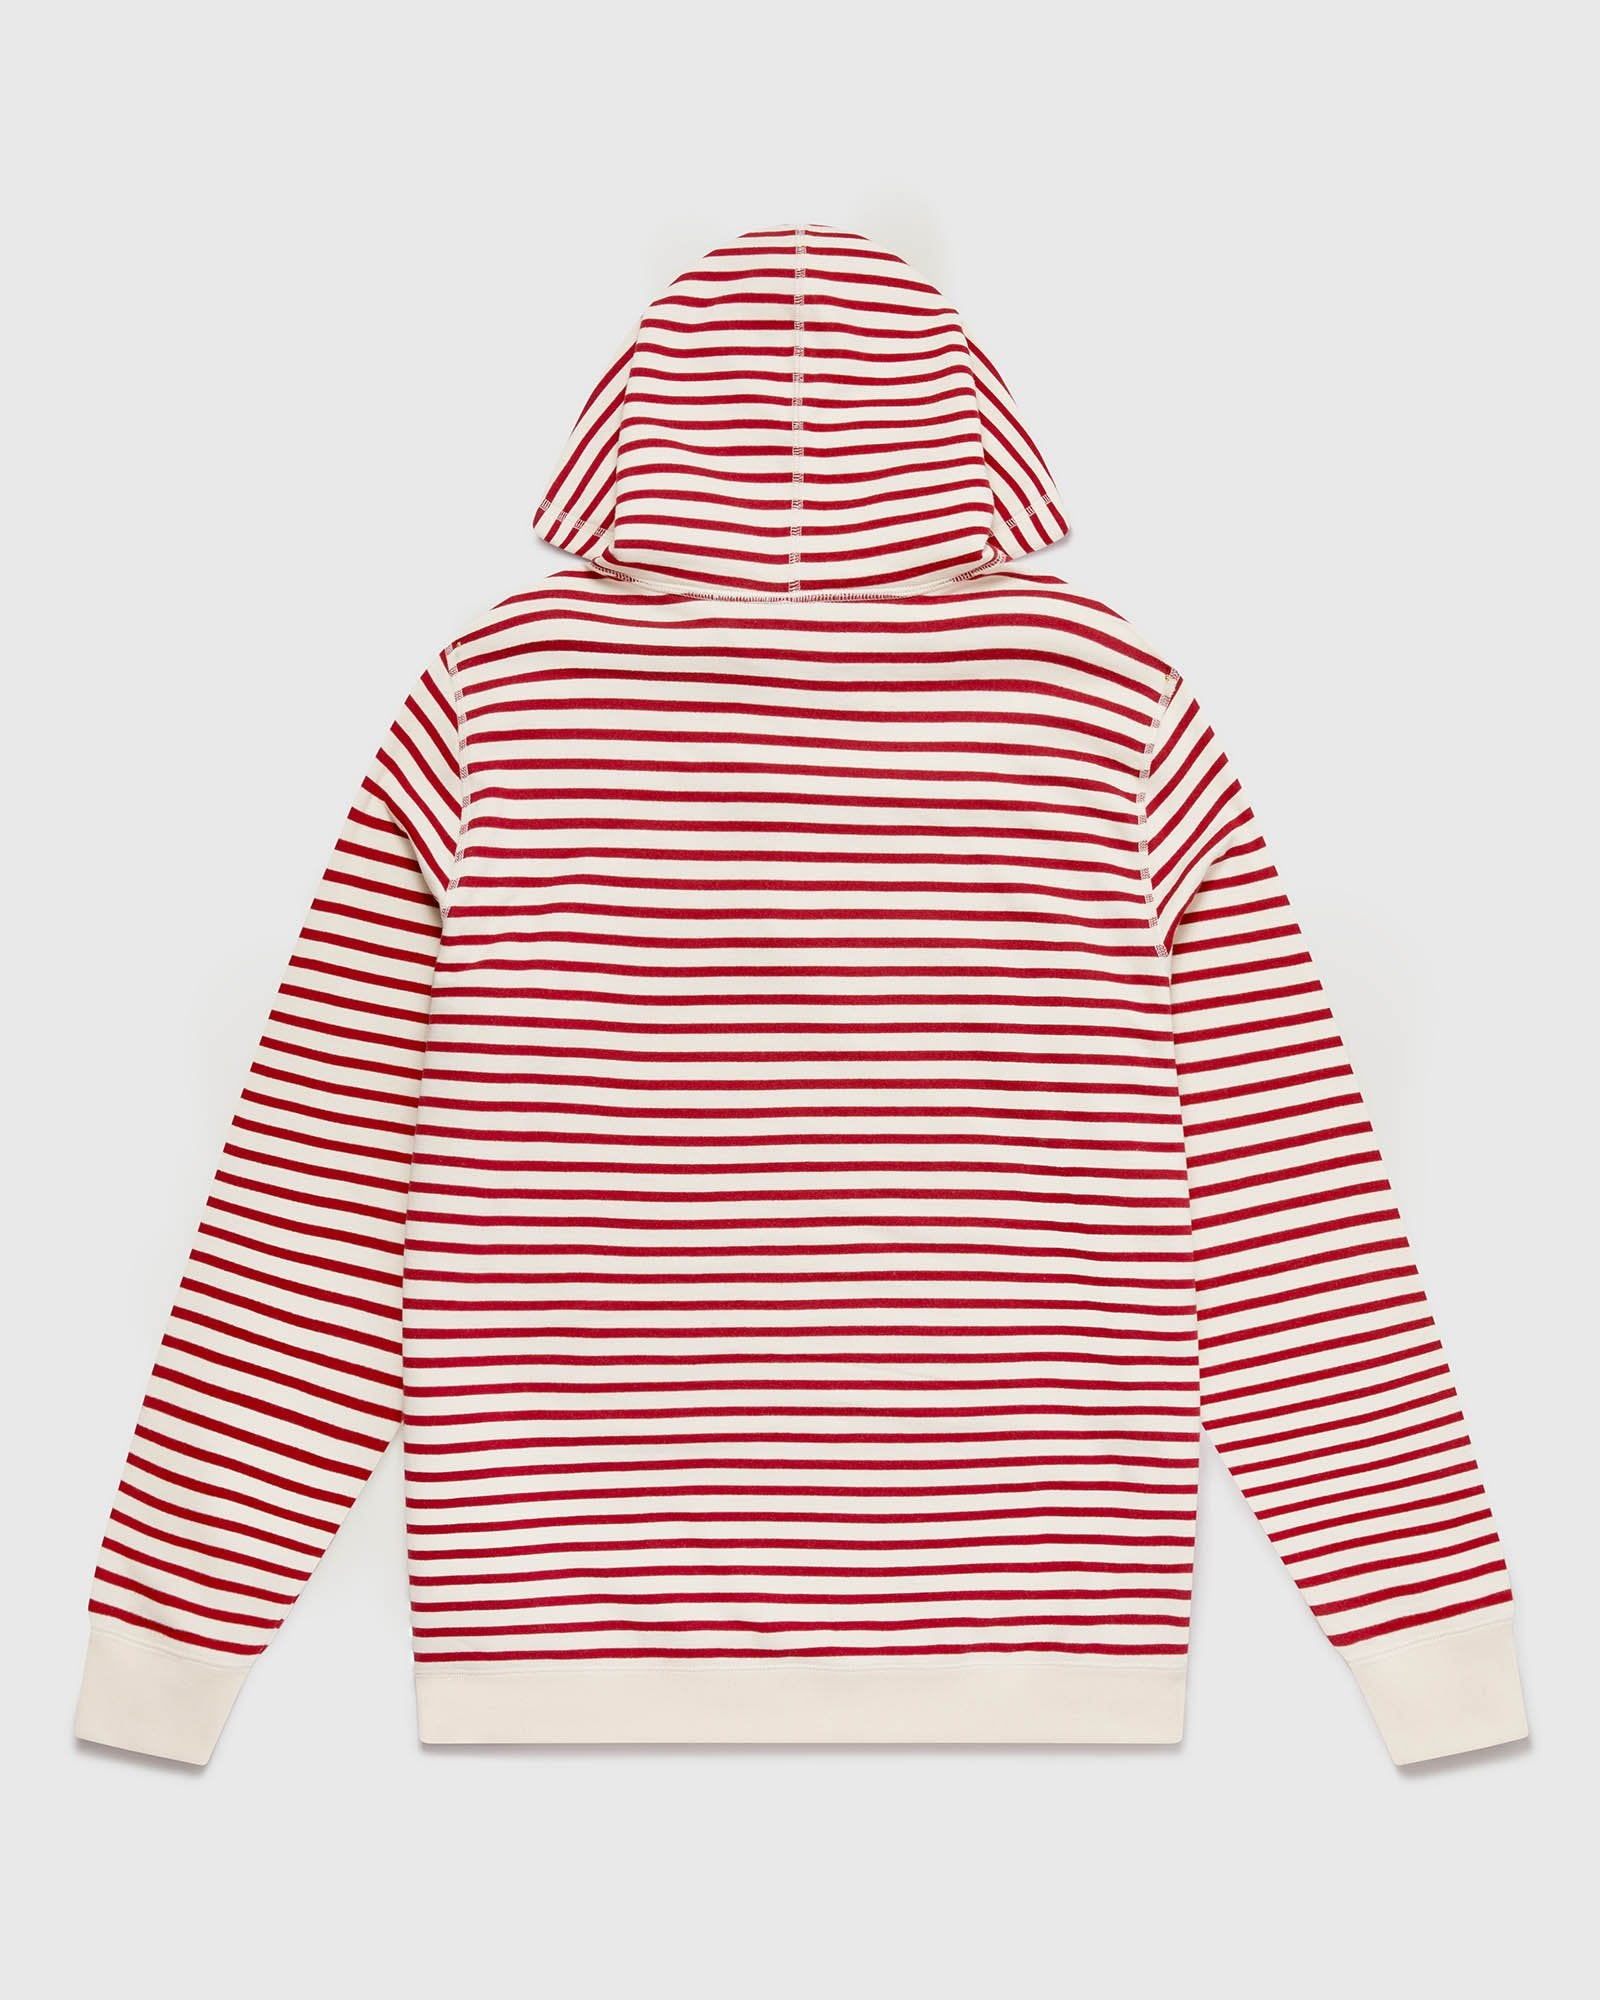 NAUTICAL STRIPE HOODIE - RED/CREAM IMAGE #3